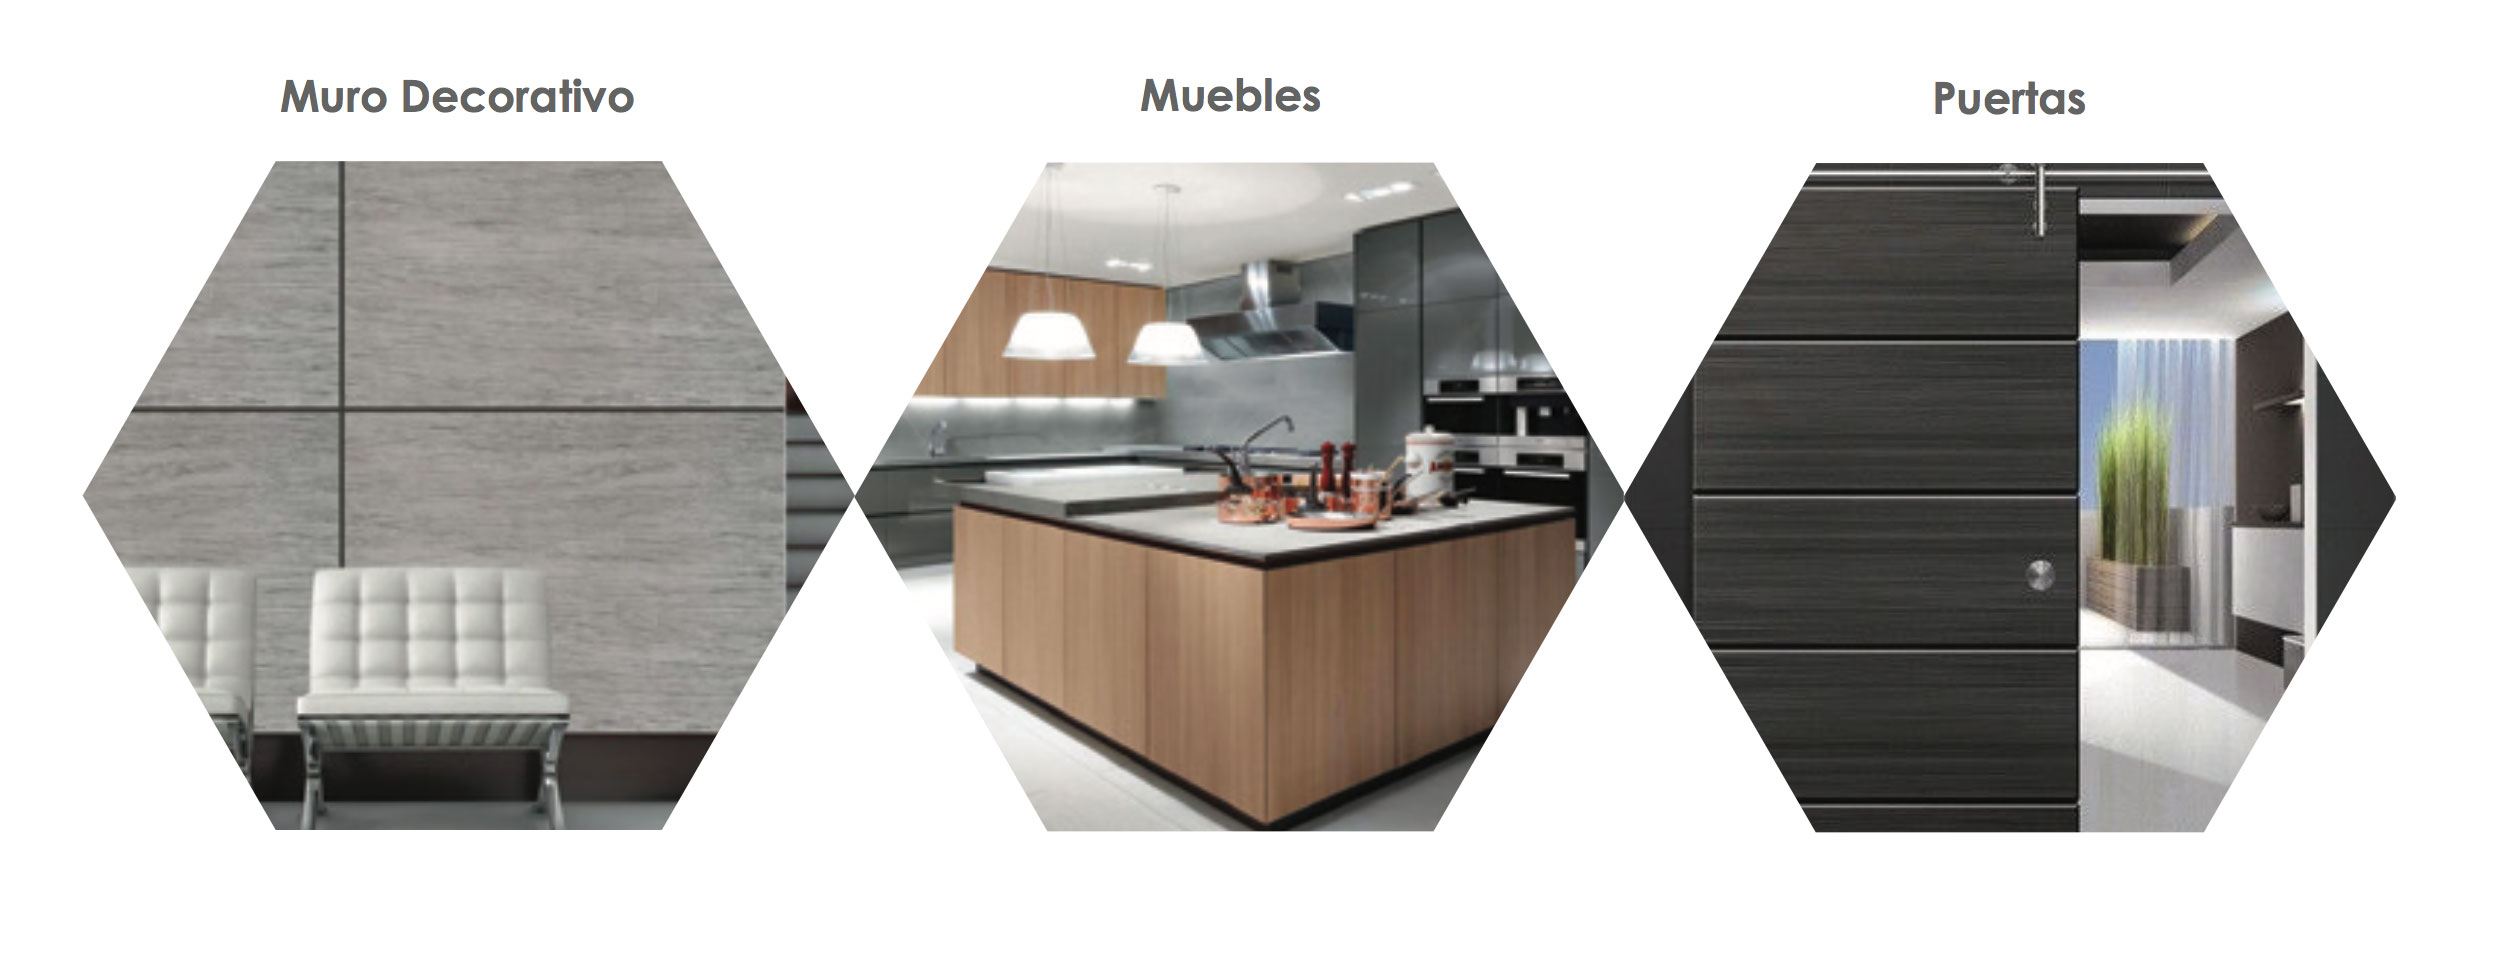 Tableros laminados para muebles. ADS Chile.